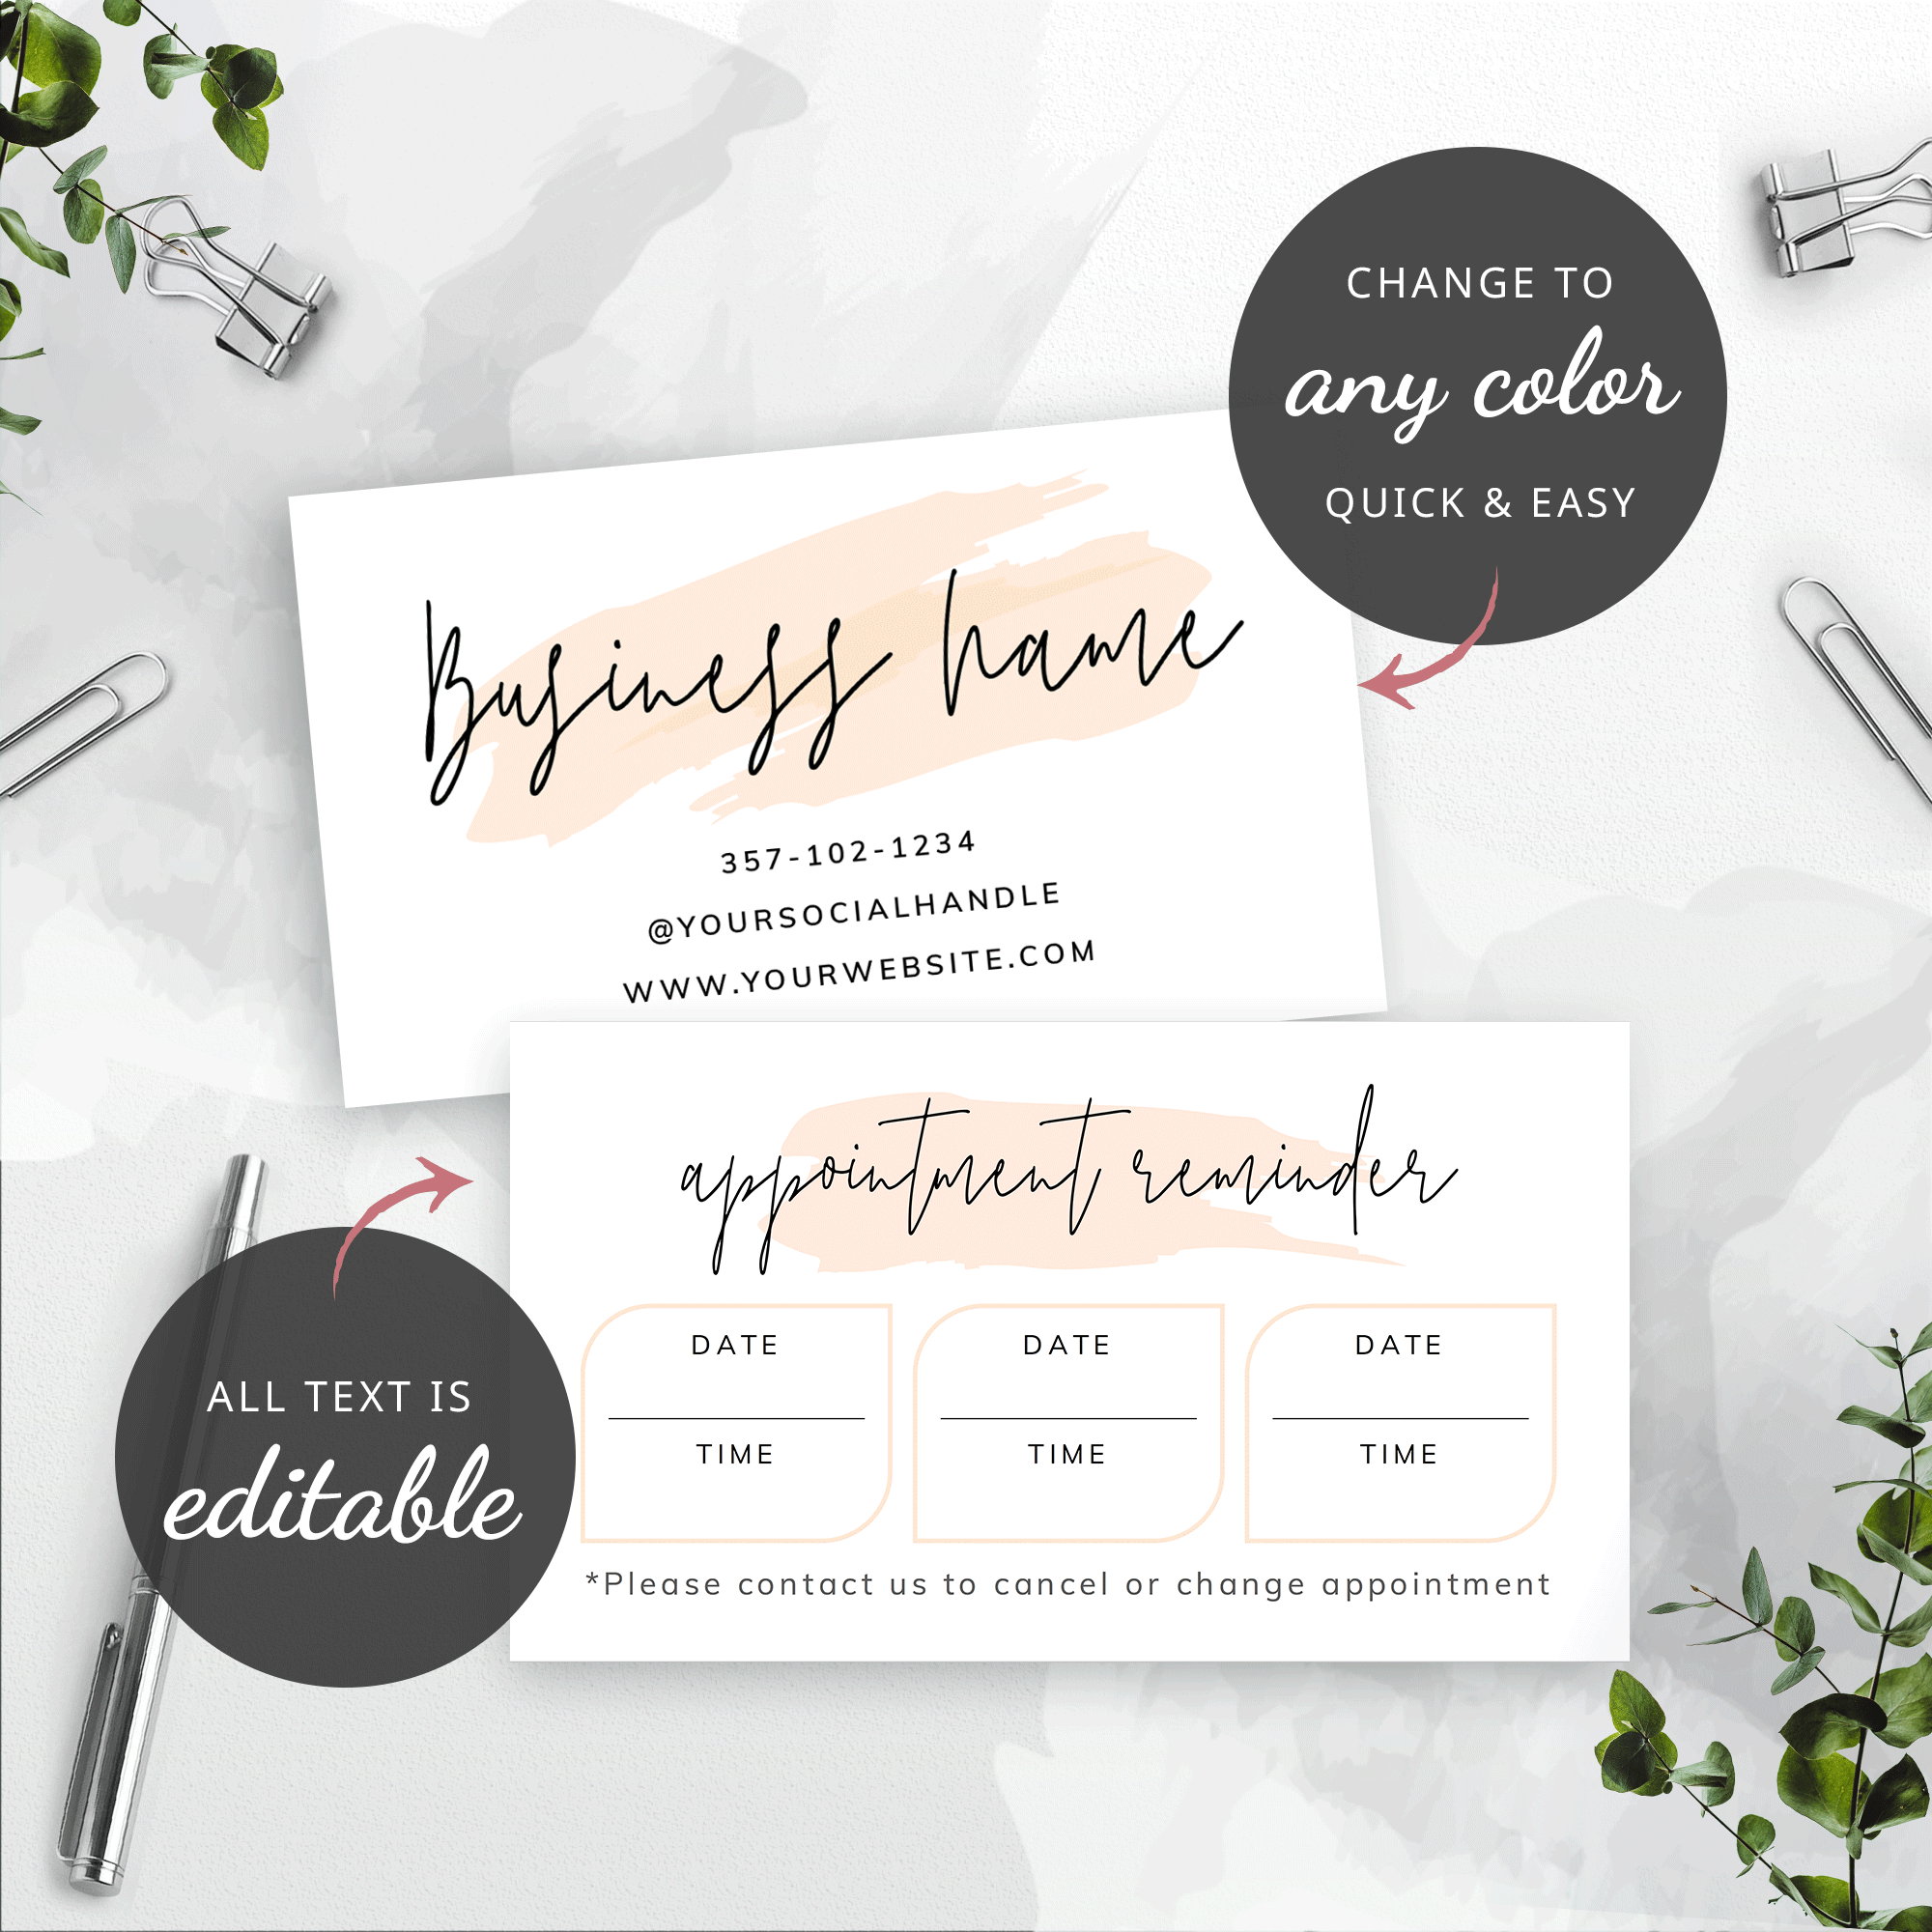 Printable Appointment Card Template Beauty Salon Booking Reminder Card Templates Editable Appointment Reminder Cards Design Lashes Corjl Card Template Photography Invoice Template Business Letter Template